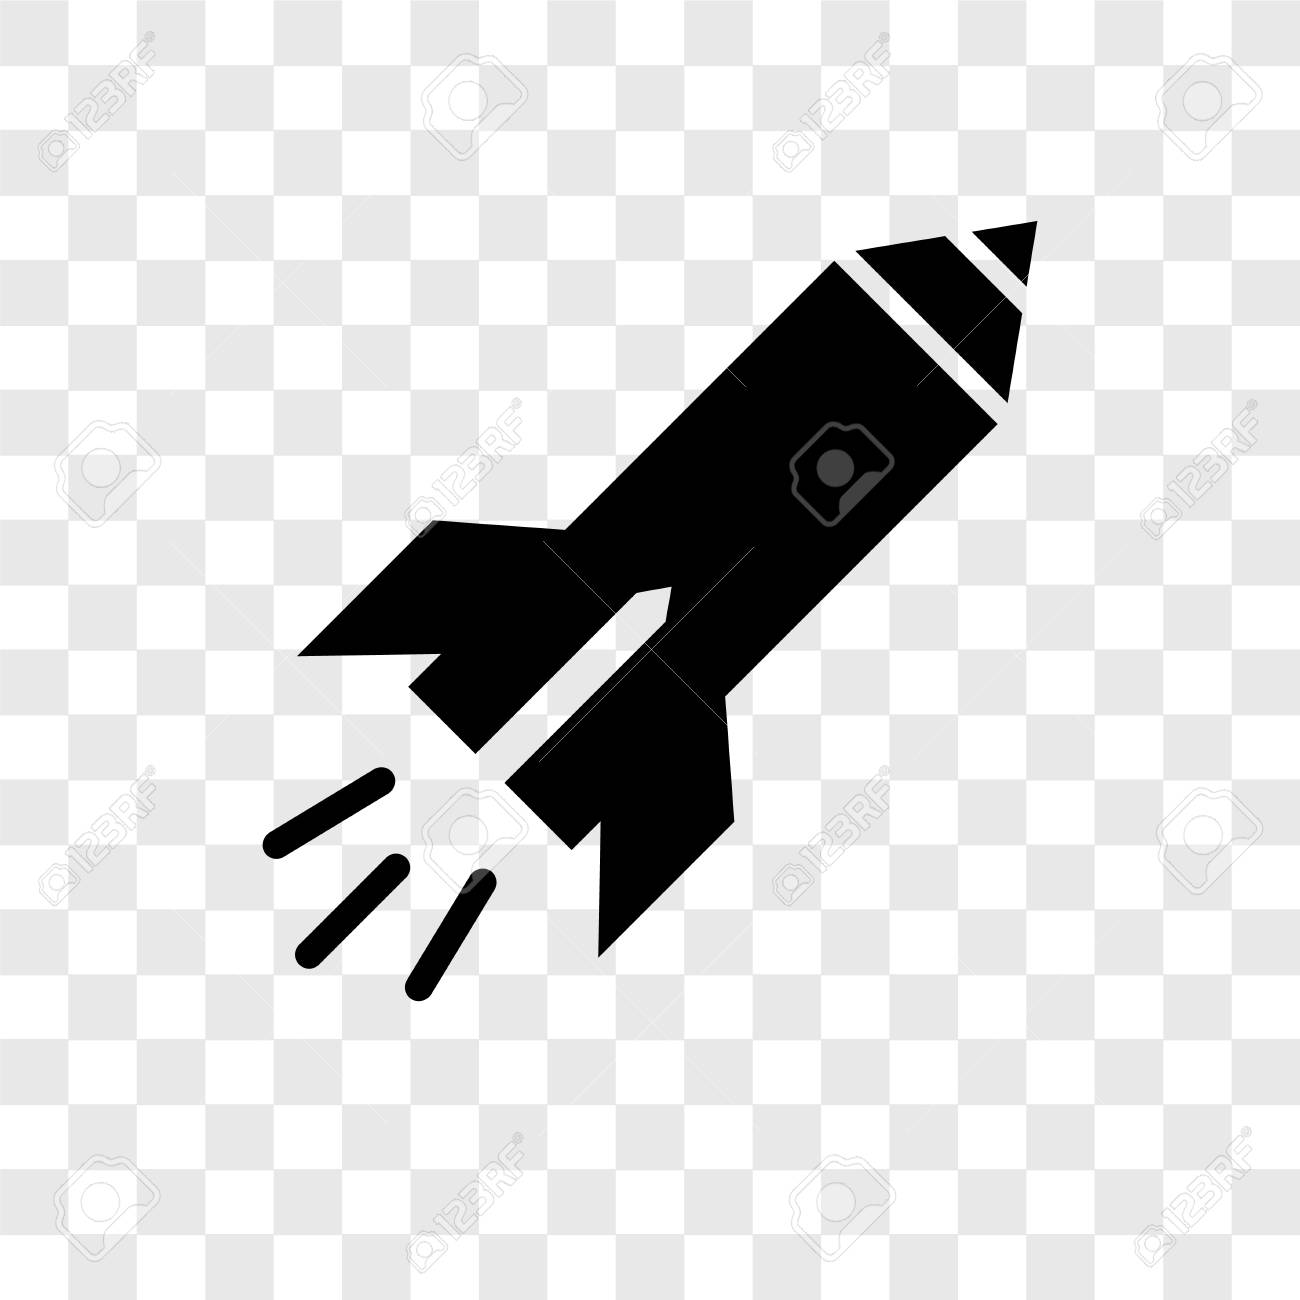 Missile Vector Icon Isolated On Transparent Background Missile